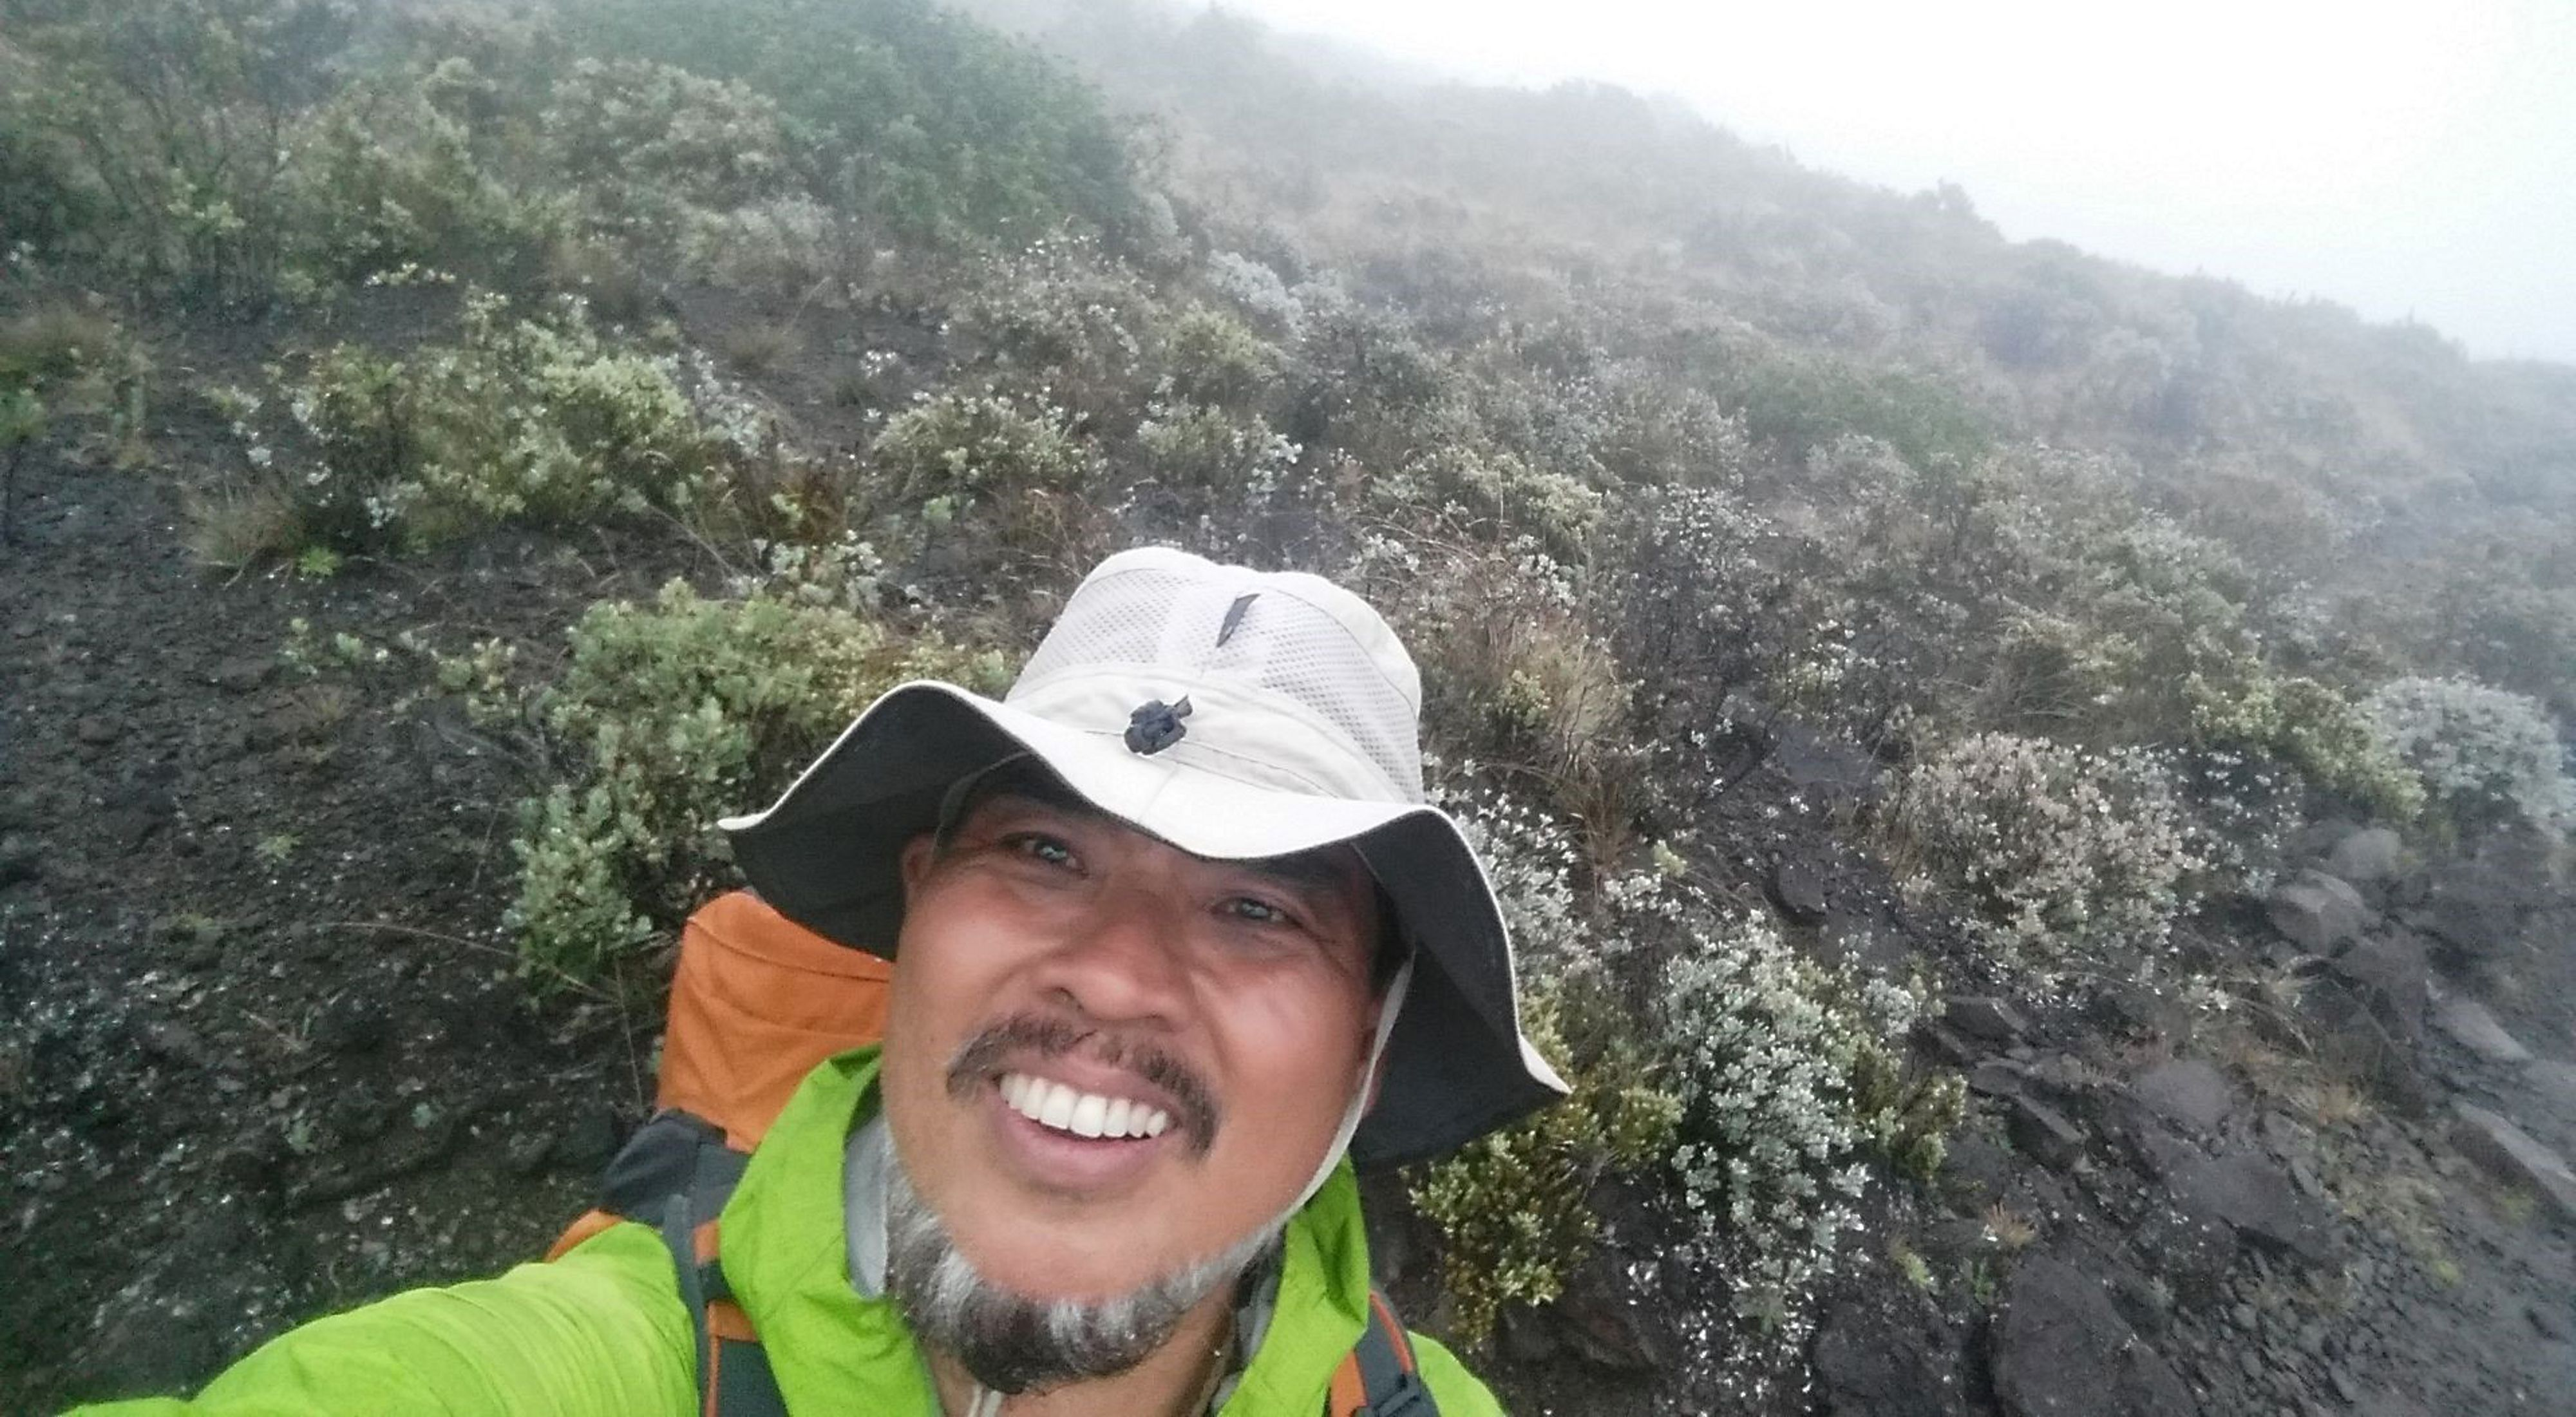 Sam Gon smiles in a selfie in front of a foggy, rocky mountainside with small shrubs and mosses growing amongst the rocks.